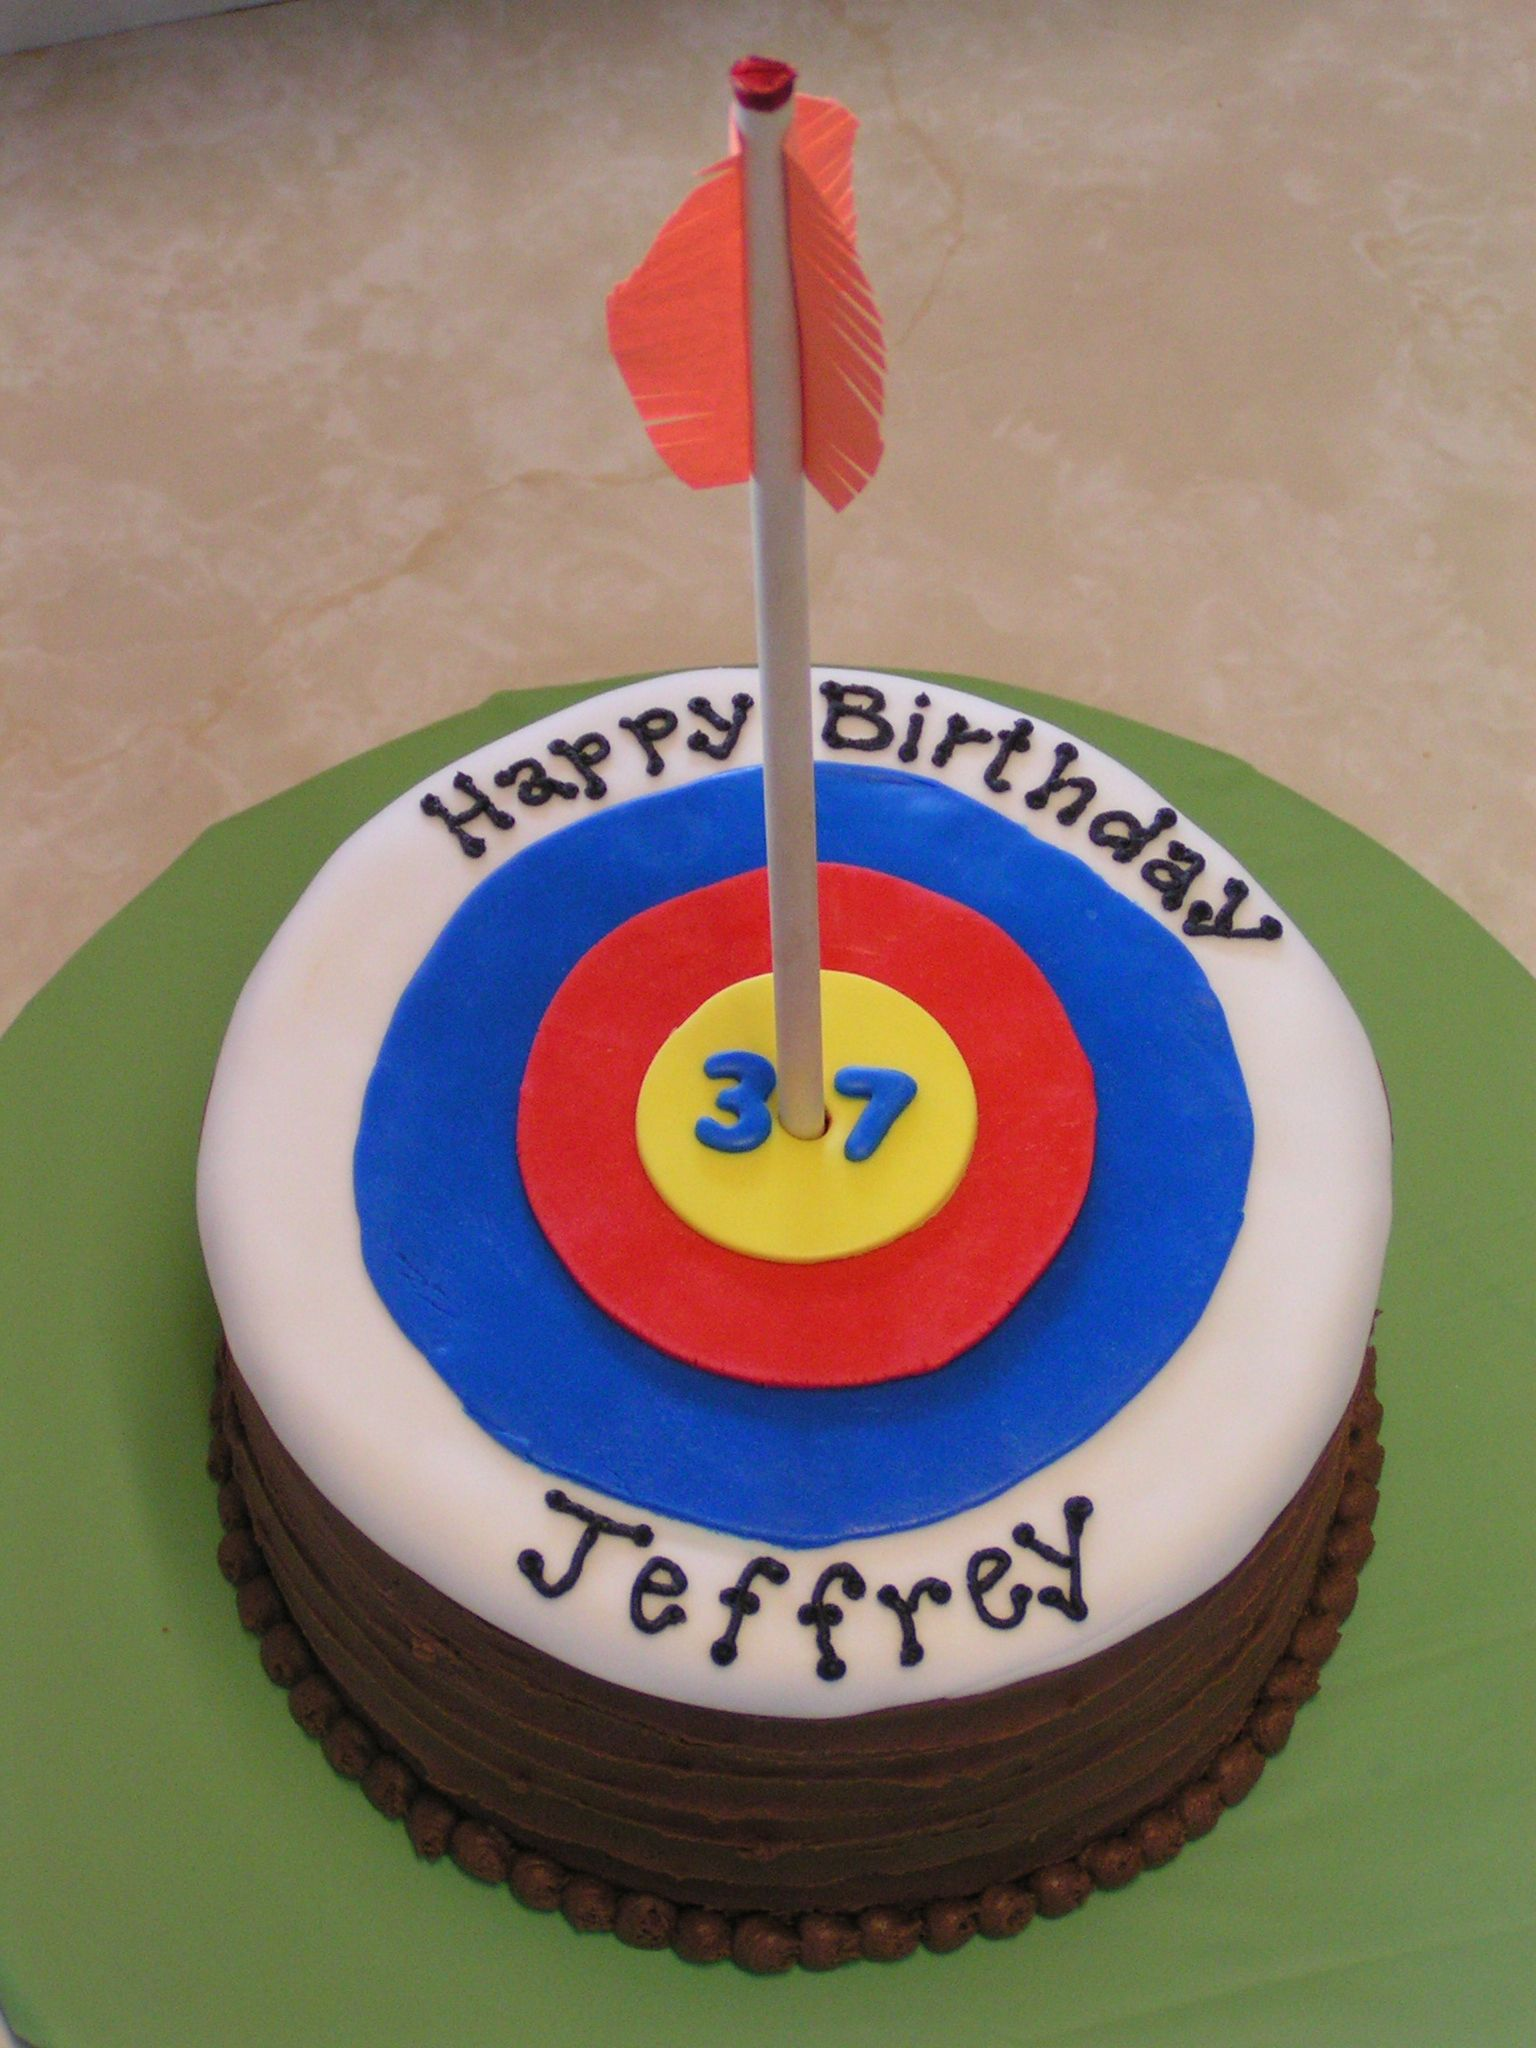 Archery Target Cake My Creations Pinterest Archery Cake and